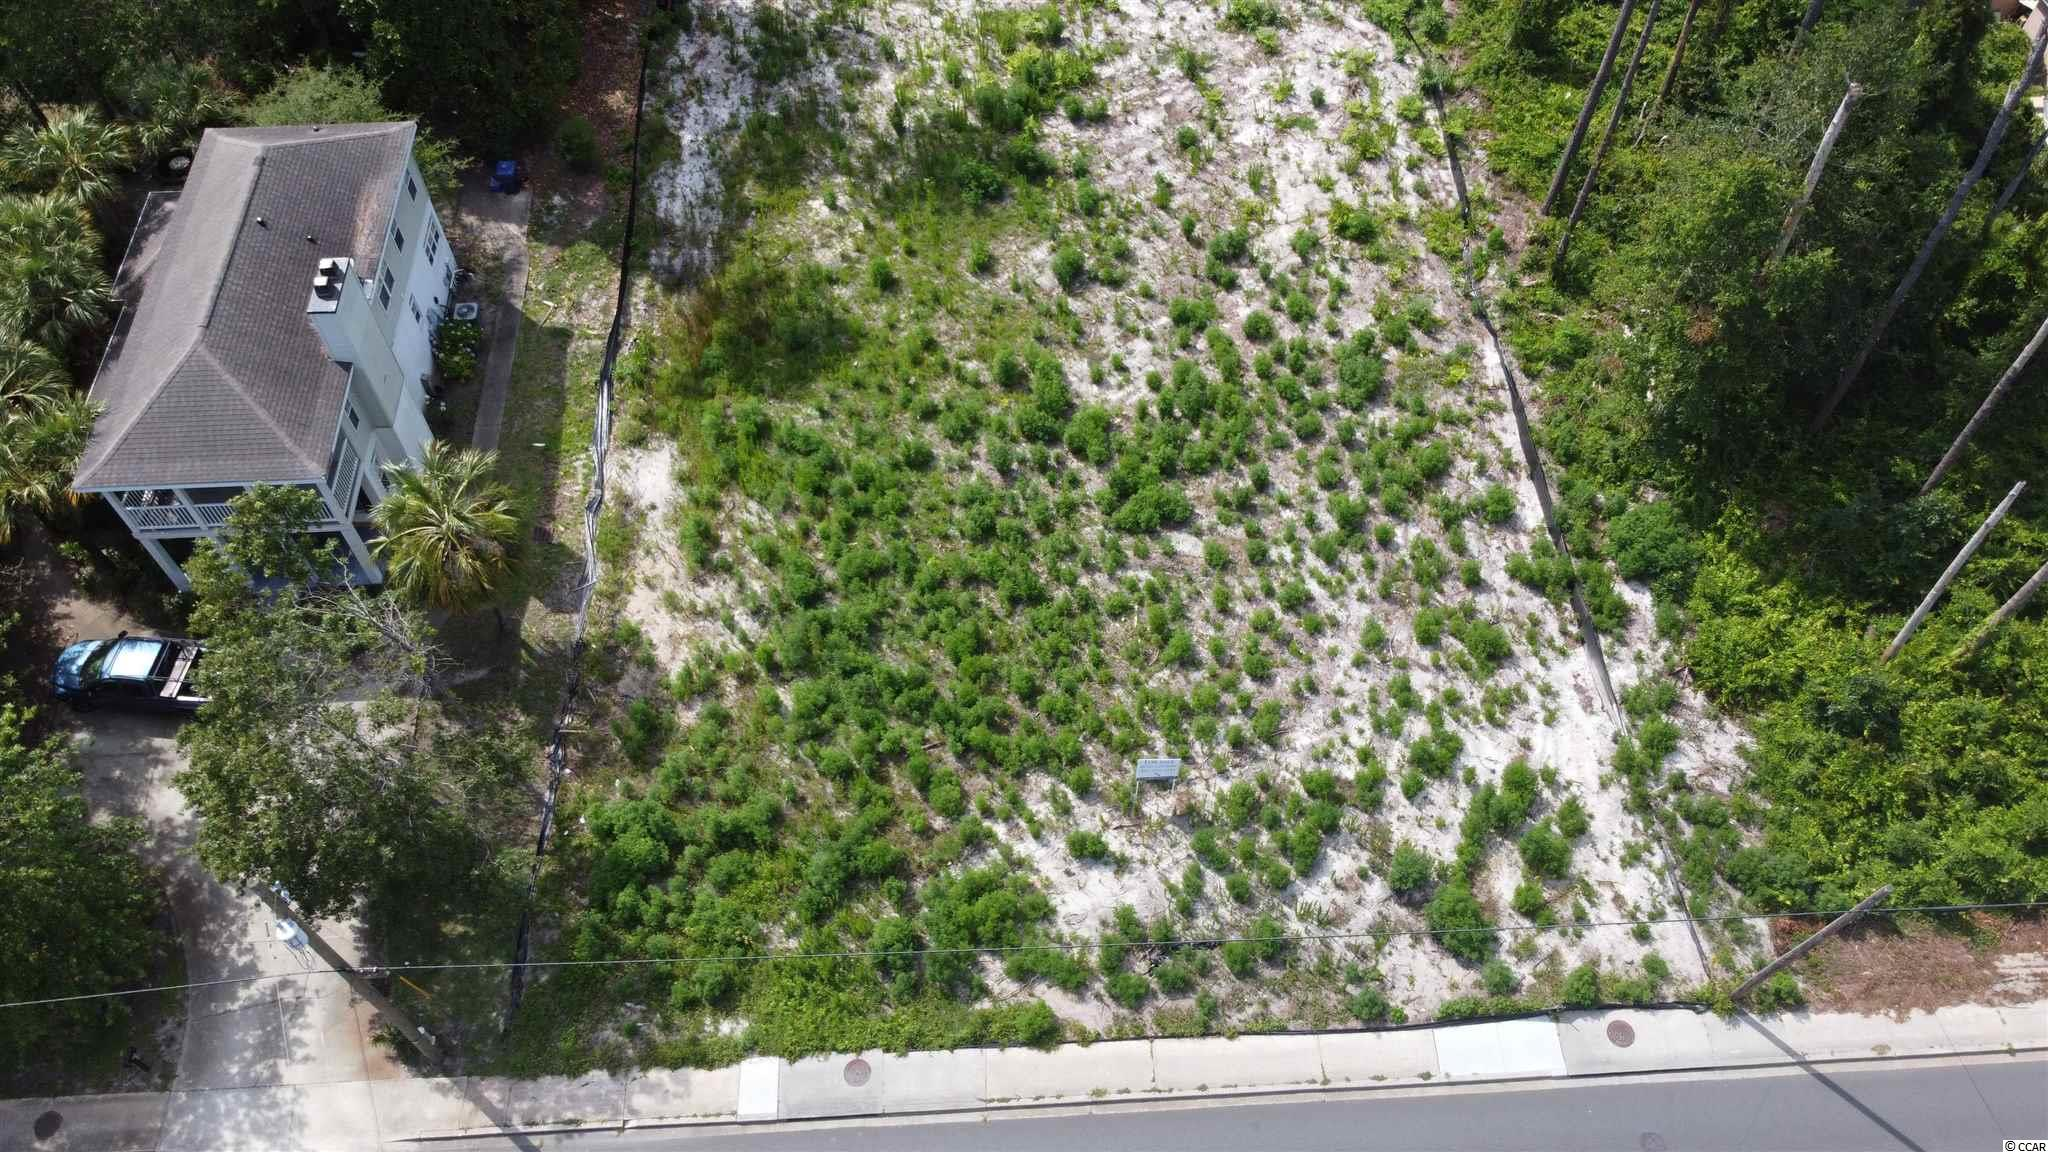 Build your dream home or homes here on this double lot east of business 17 in the Golden mile section of Myrtle Beach, just three block away from the ocean with access to all utilities and no HOA fees. There are very few vacant double lots remaining anywhere along the Grand Strand. This is a rare find and this double lot will not last long. All measurements are approximate and not guaranteed. Buyer to verify.